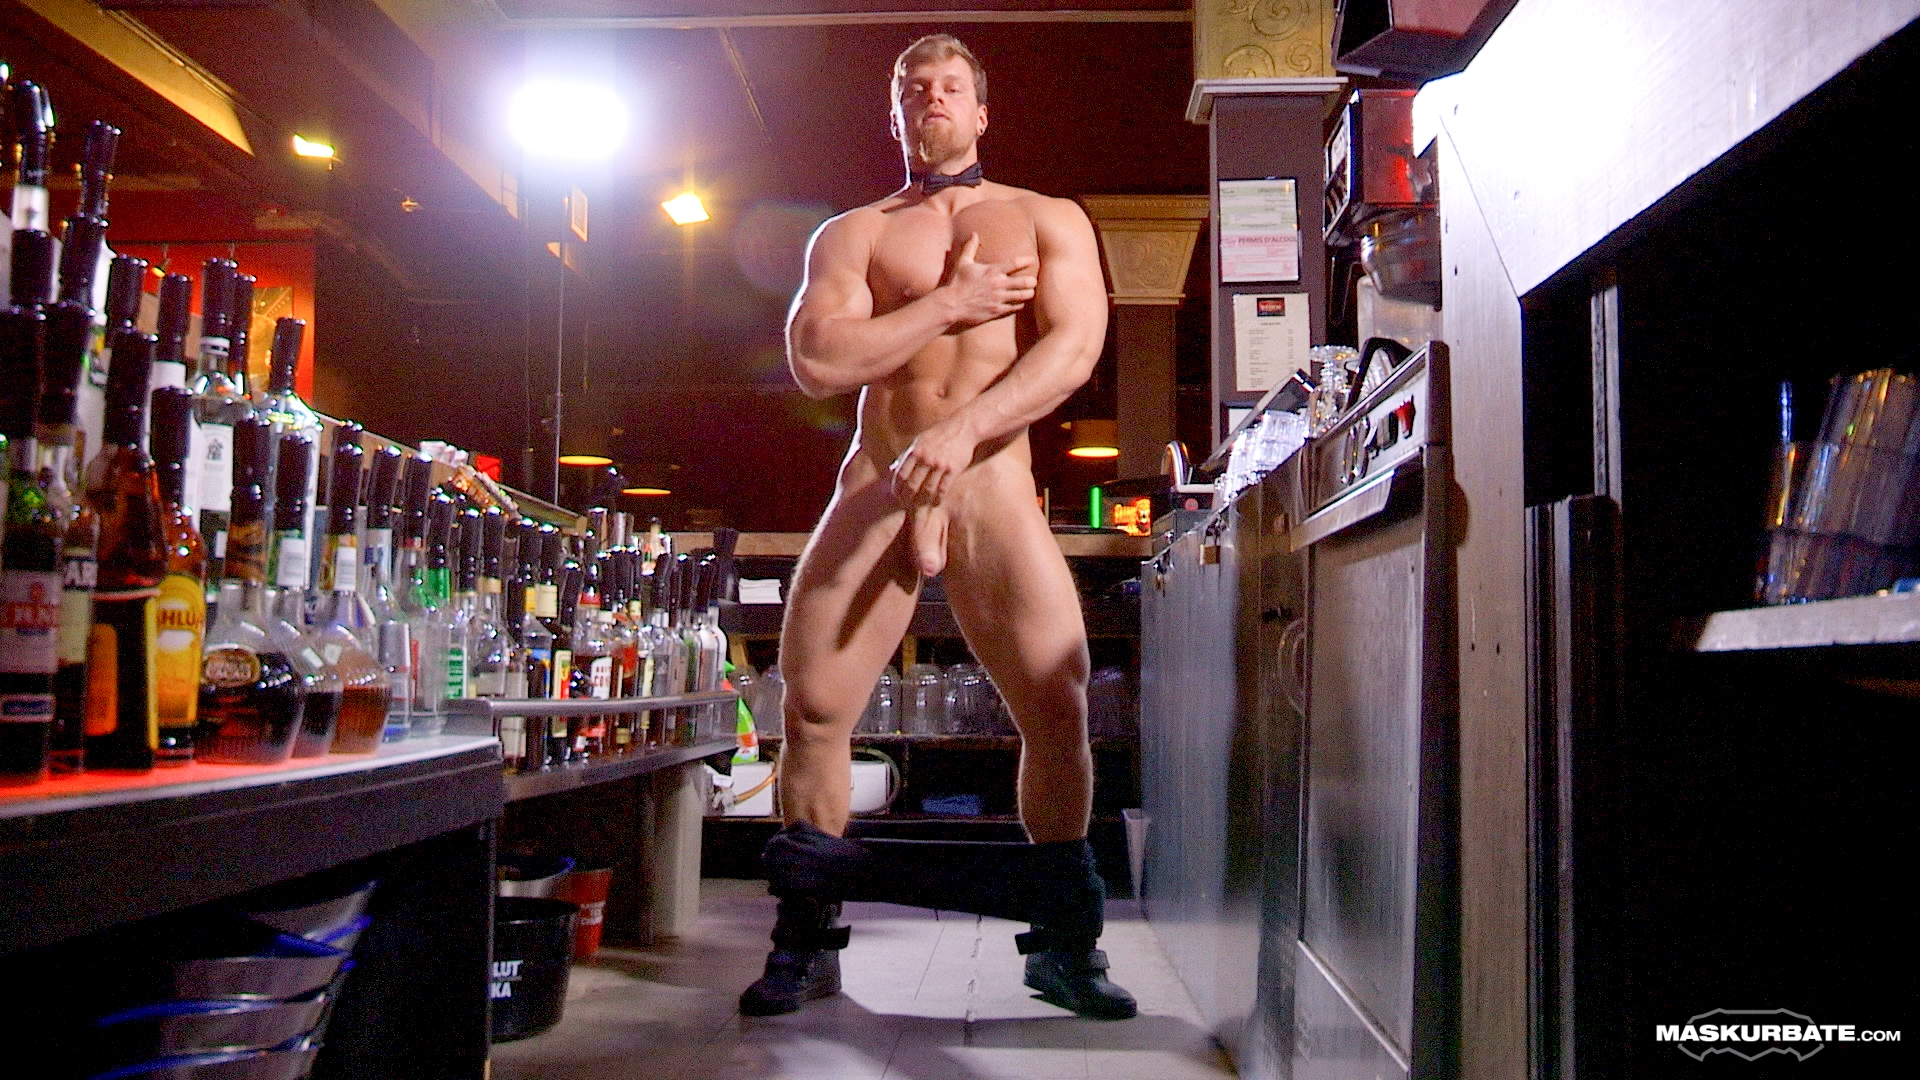 Gay Bars Like all other parts of gay culture